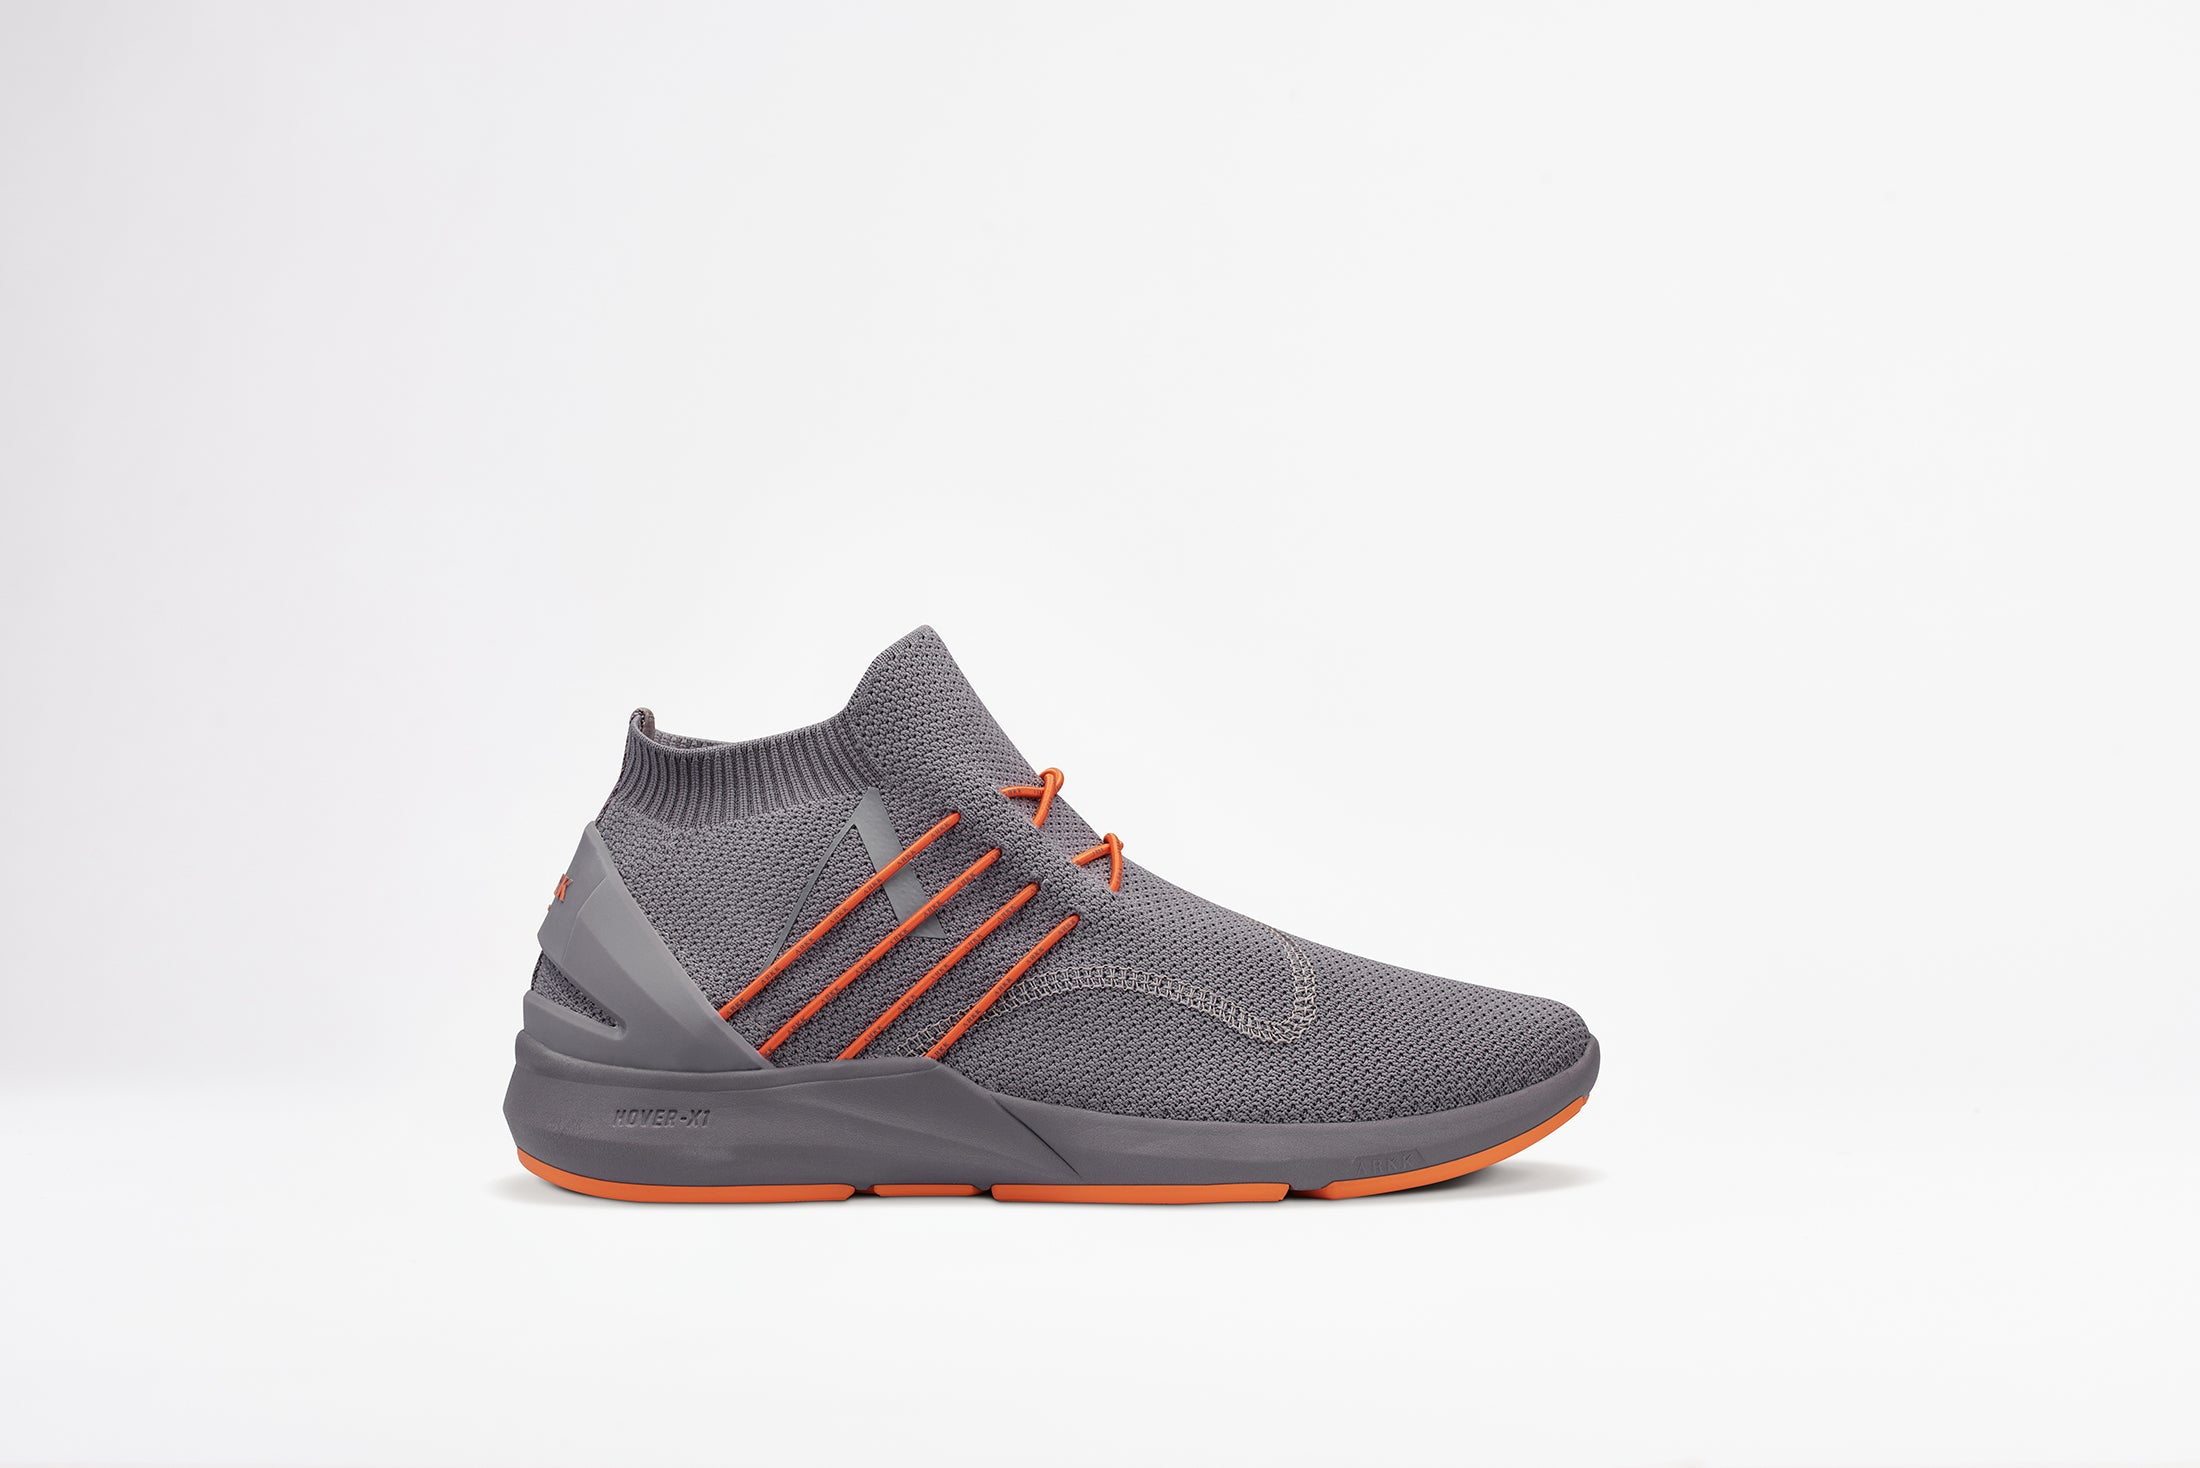 ARKK Copenhagen - Main Line Spyqon  FG H-X1 Shark Grey Orange - Men Spyqon